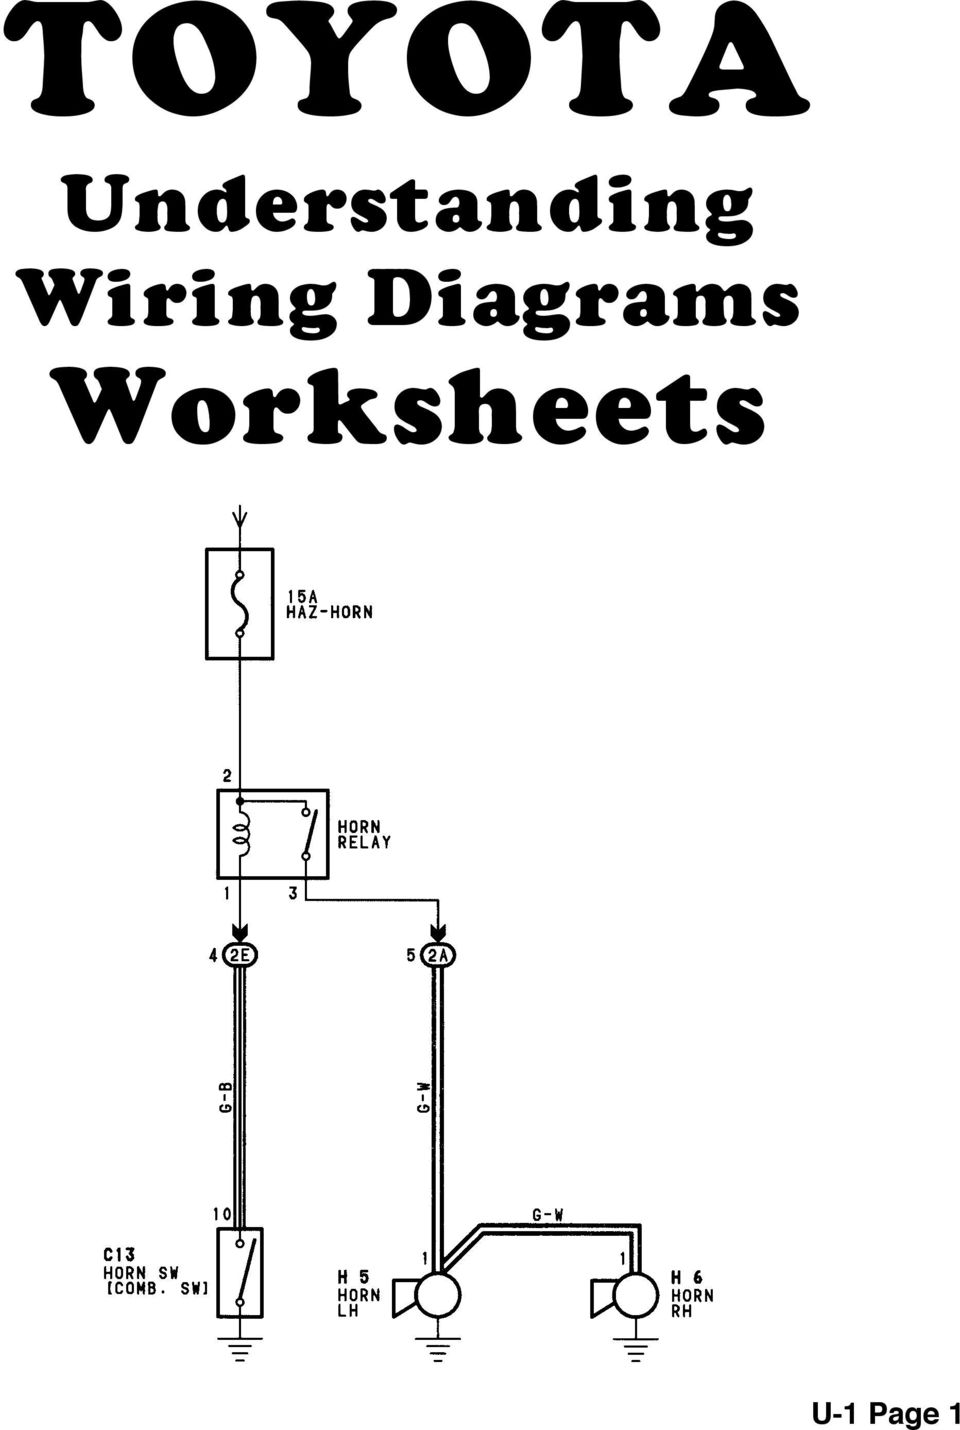 BODY ELECTRICAL TOYOTA ELECTRICAL WIRING DIAGRAM WORKBOOK